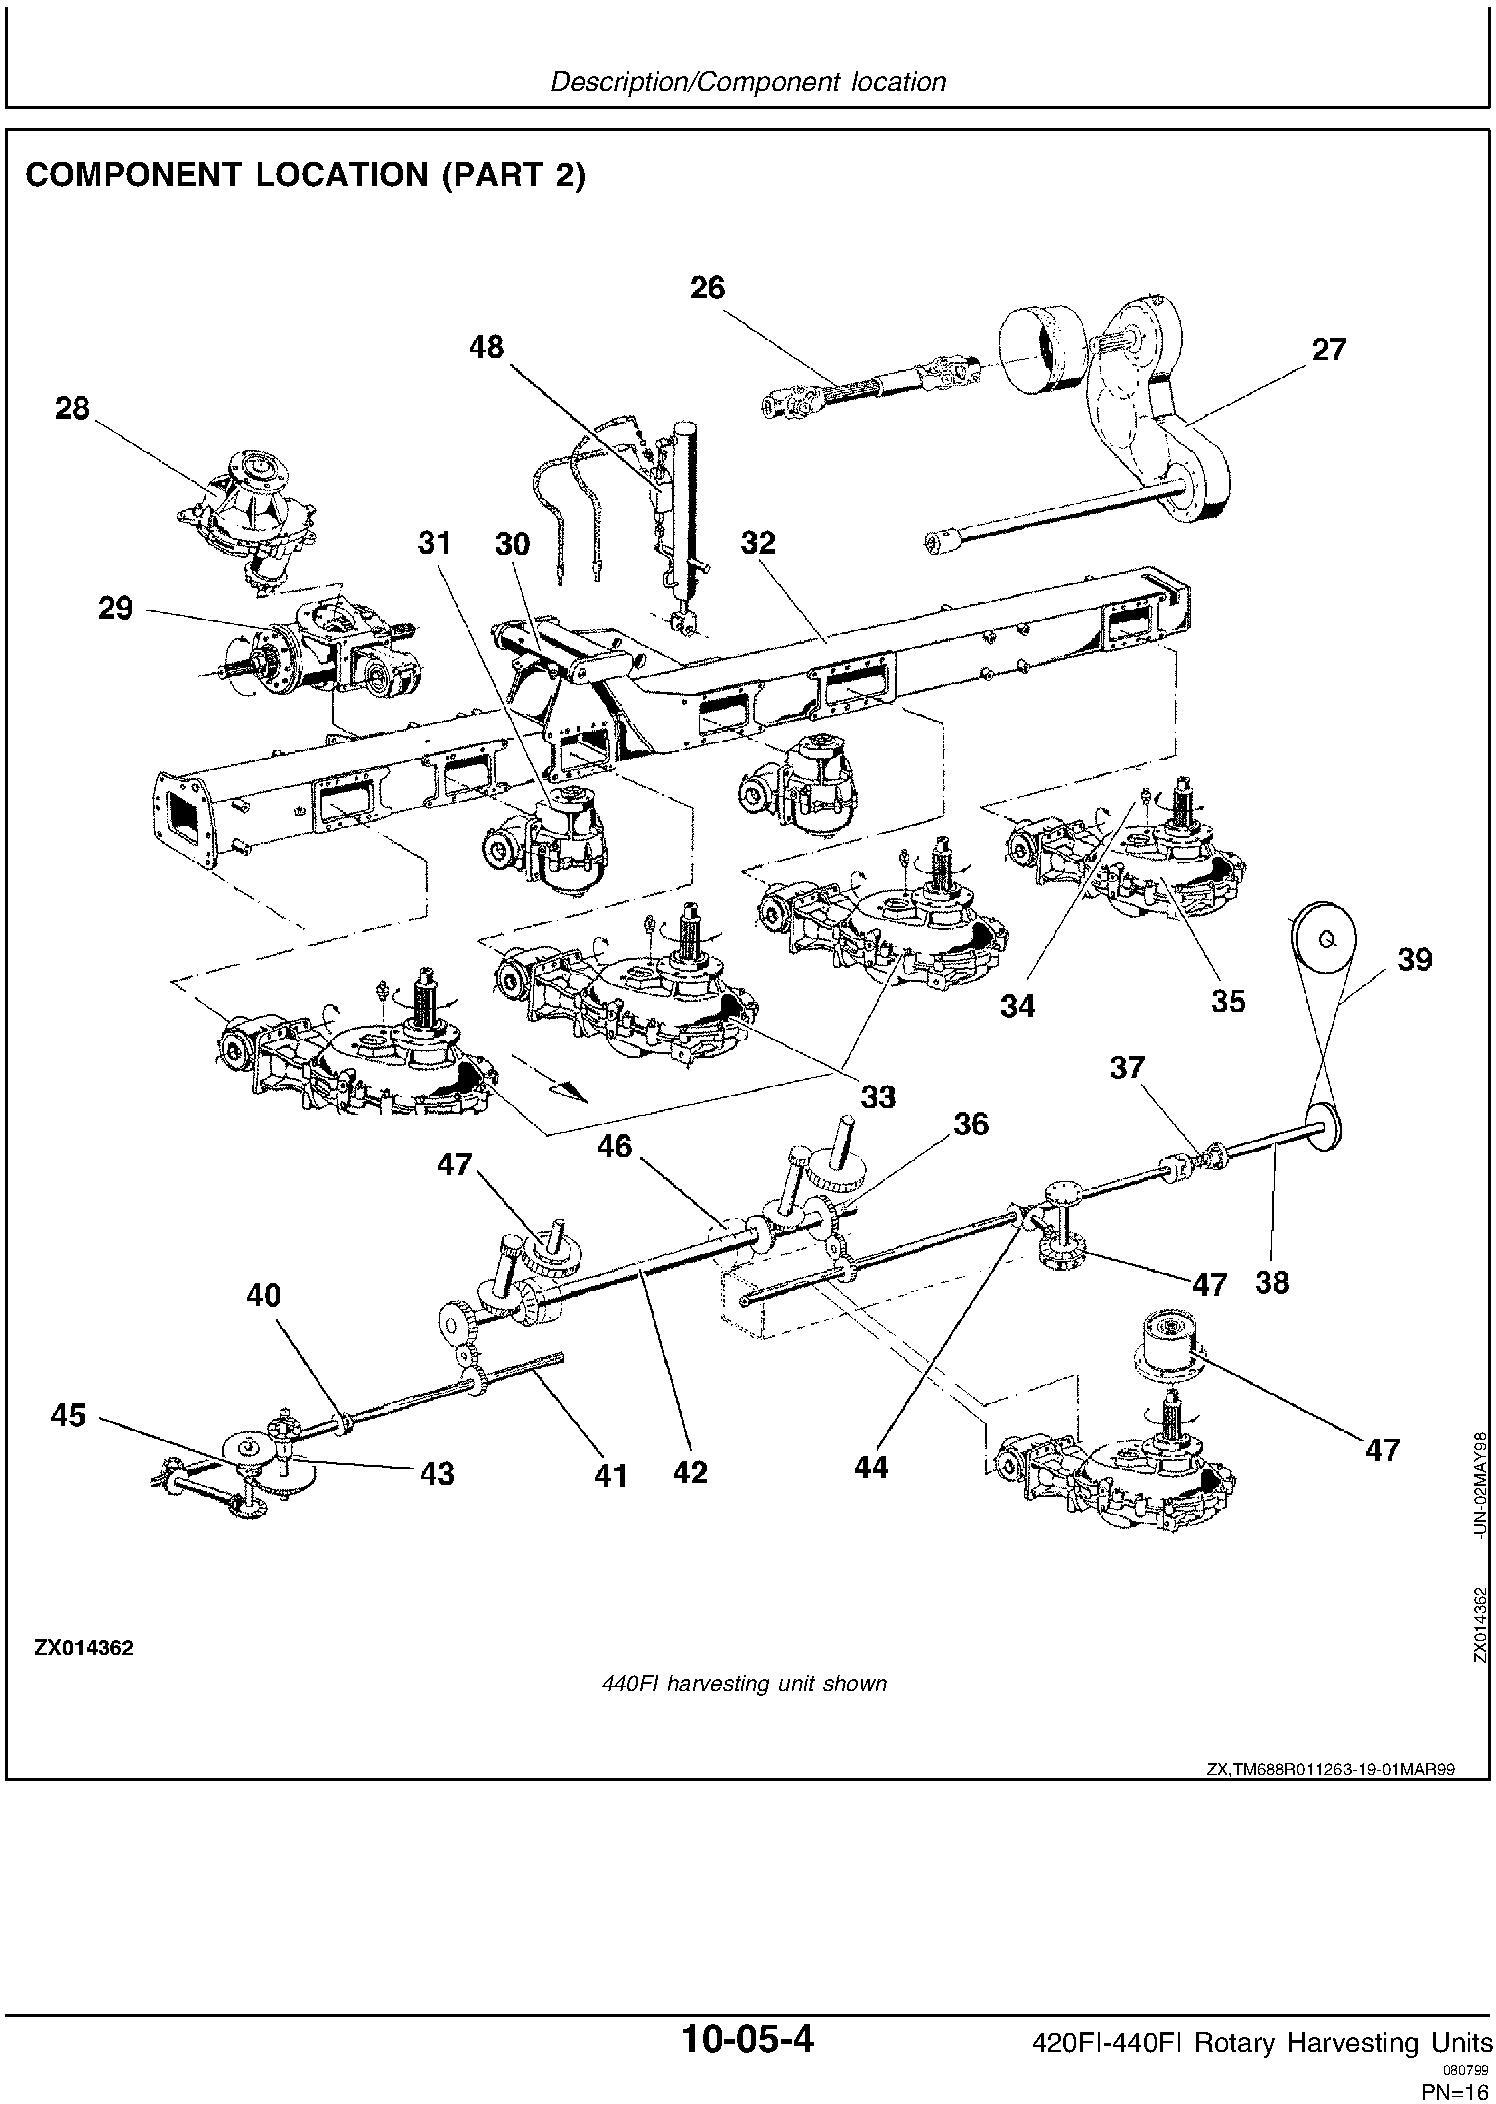 New Holland 420FI, 440FI Rotary Harvesting Headers Service Manual - 2